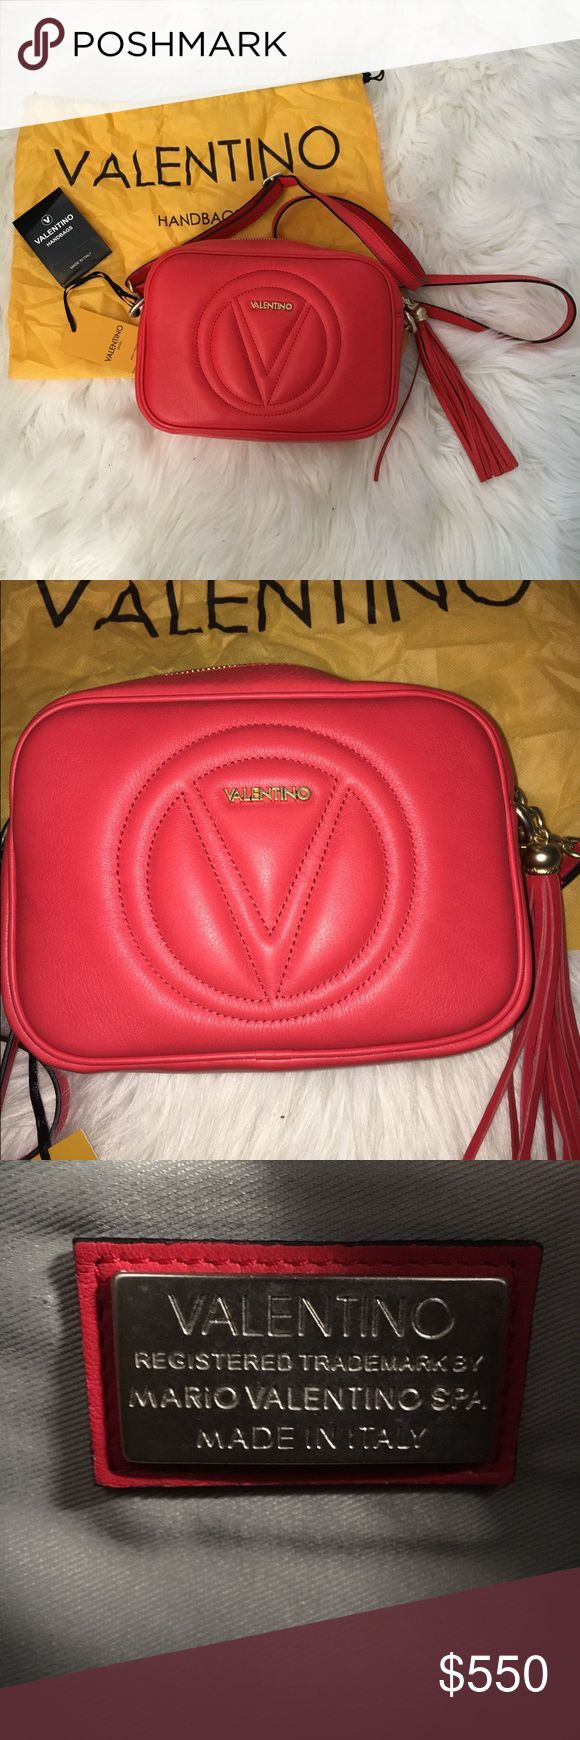 """Valentino beautiful bag. Brand new with tags, beautiful red/orange color no scratches . Strap can be removed and bag can be used as a clutch. Strap 13""""-28"""" drop, 9""""W X 6"""" H X 3""""D Valentino Bags Crossbody Bags"""